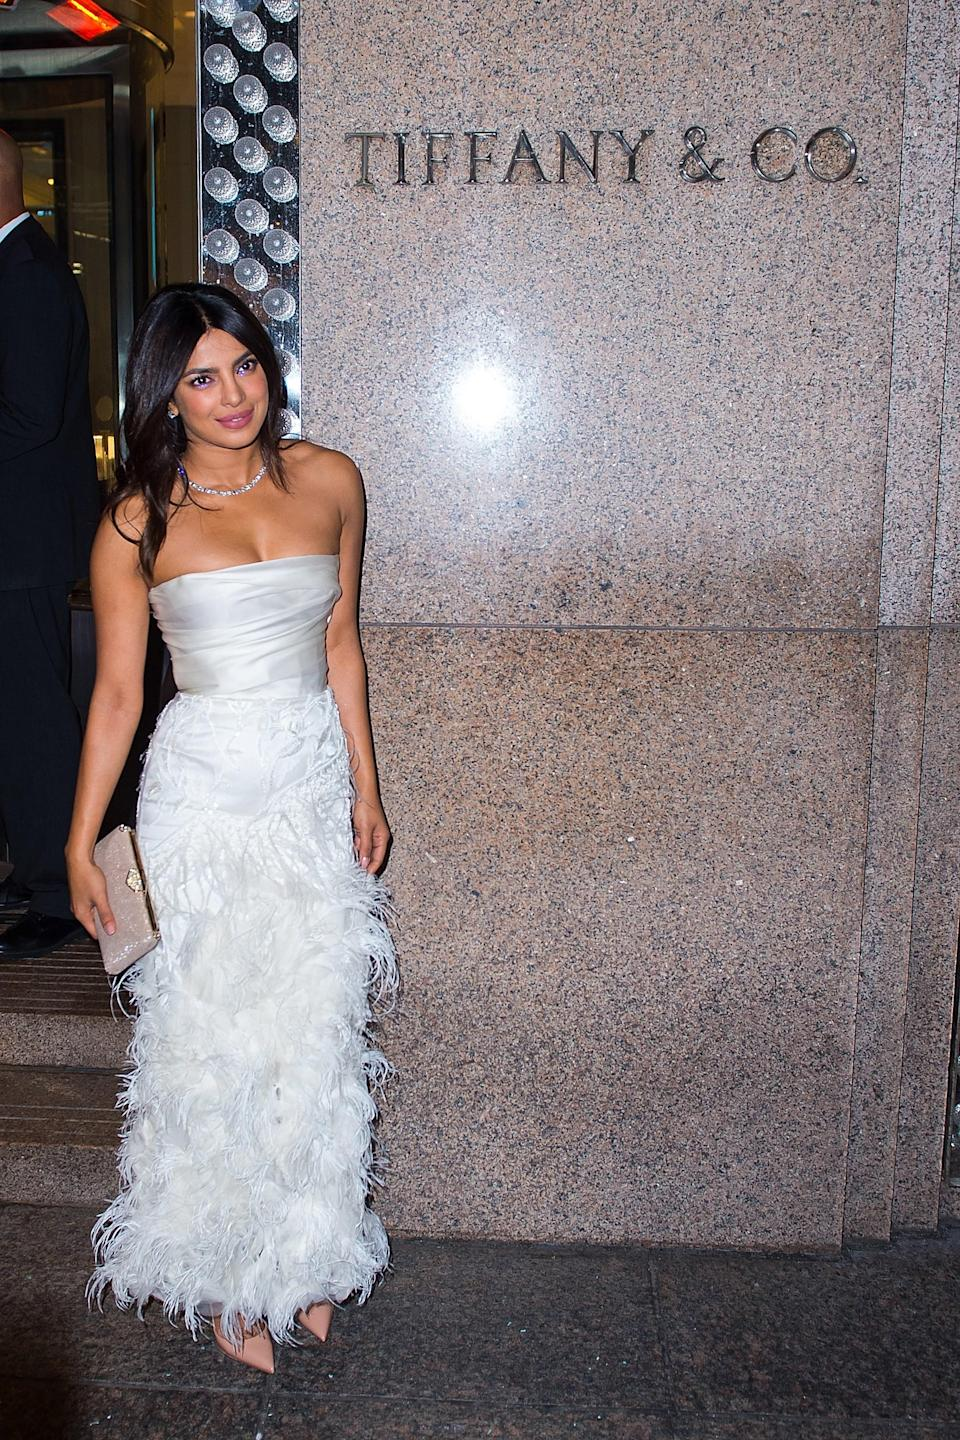 We don't know Priyanka Chopra and Nick Jonas' wedding date yet, but the actress just threw a glitzy bridal shower at Tiffany & Co. She looked stunning.